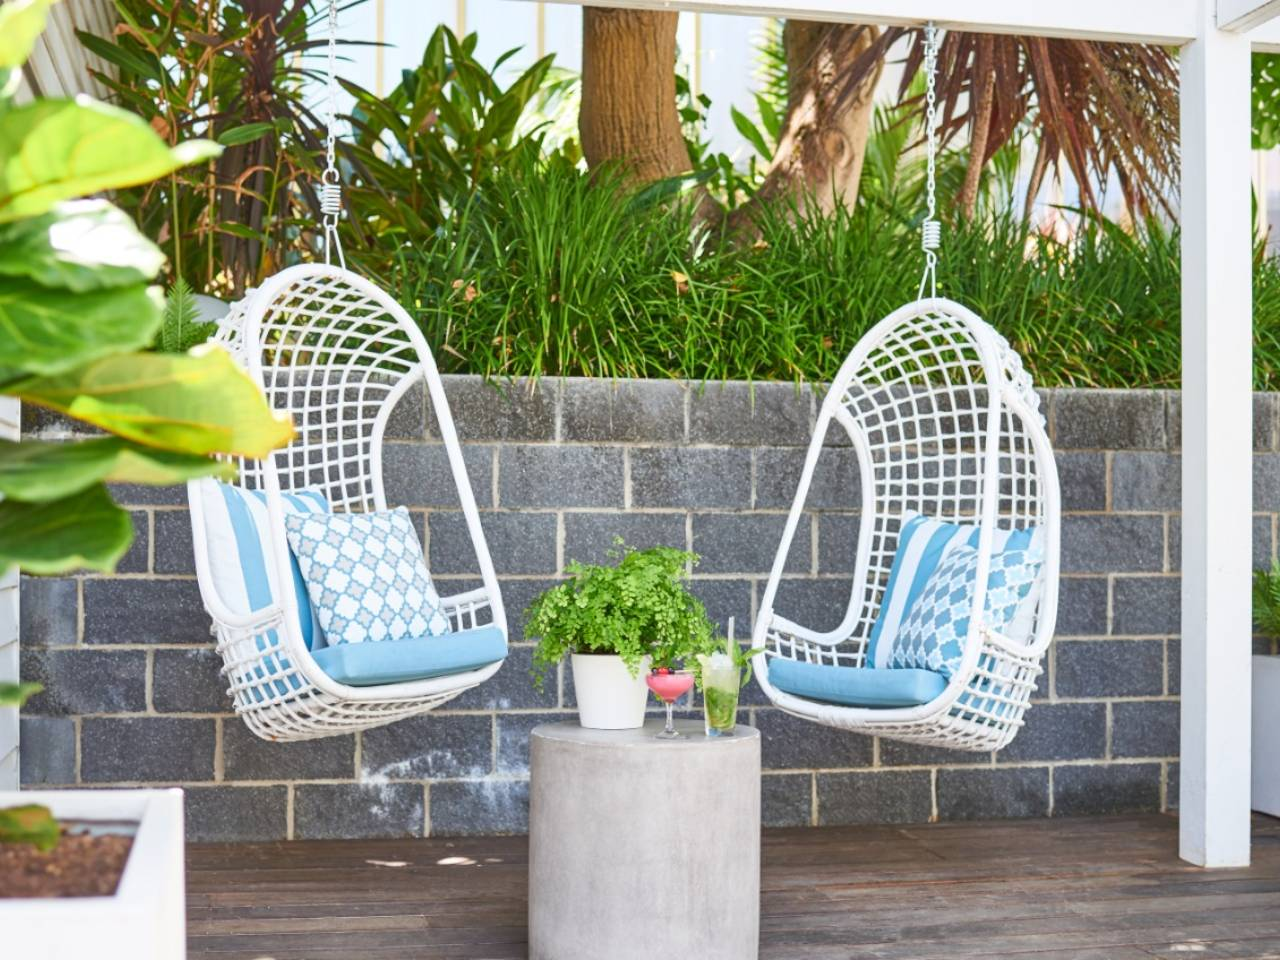 Two Hanging Chairs With A Small Table Set Up In The Private Functions Deck Area.